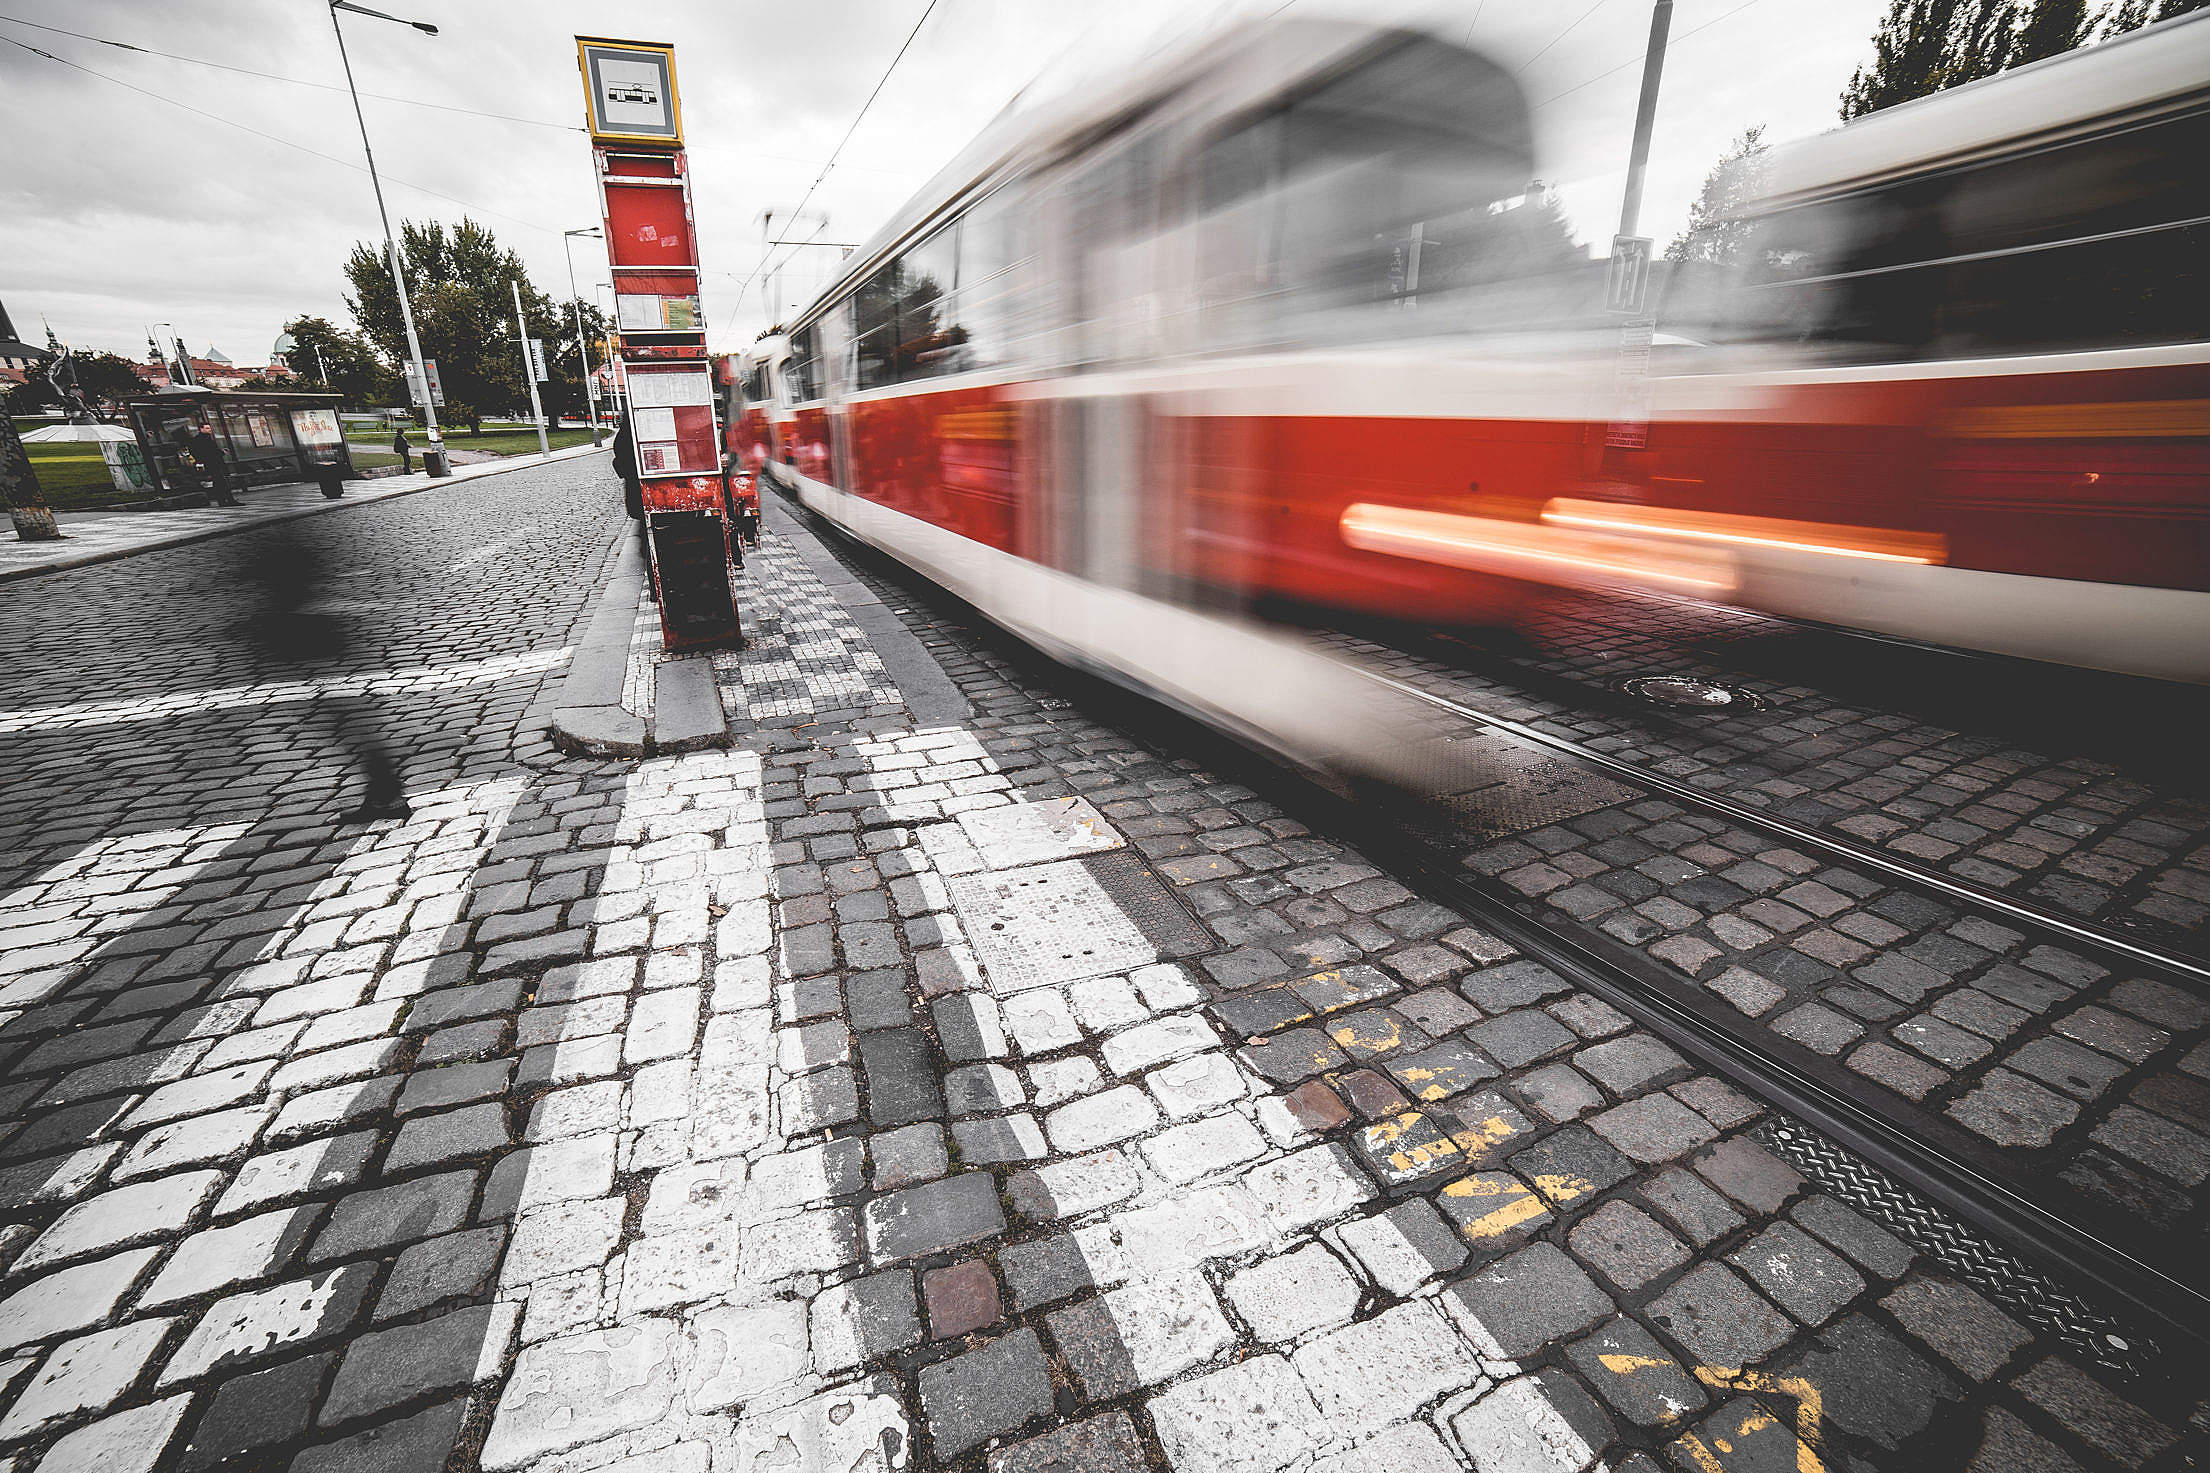 Tram Leaving the Tram Stop Free Stock Photo